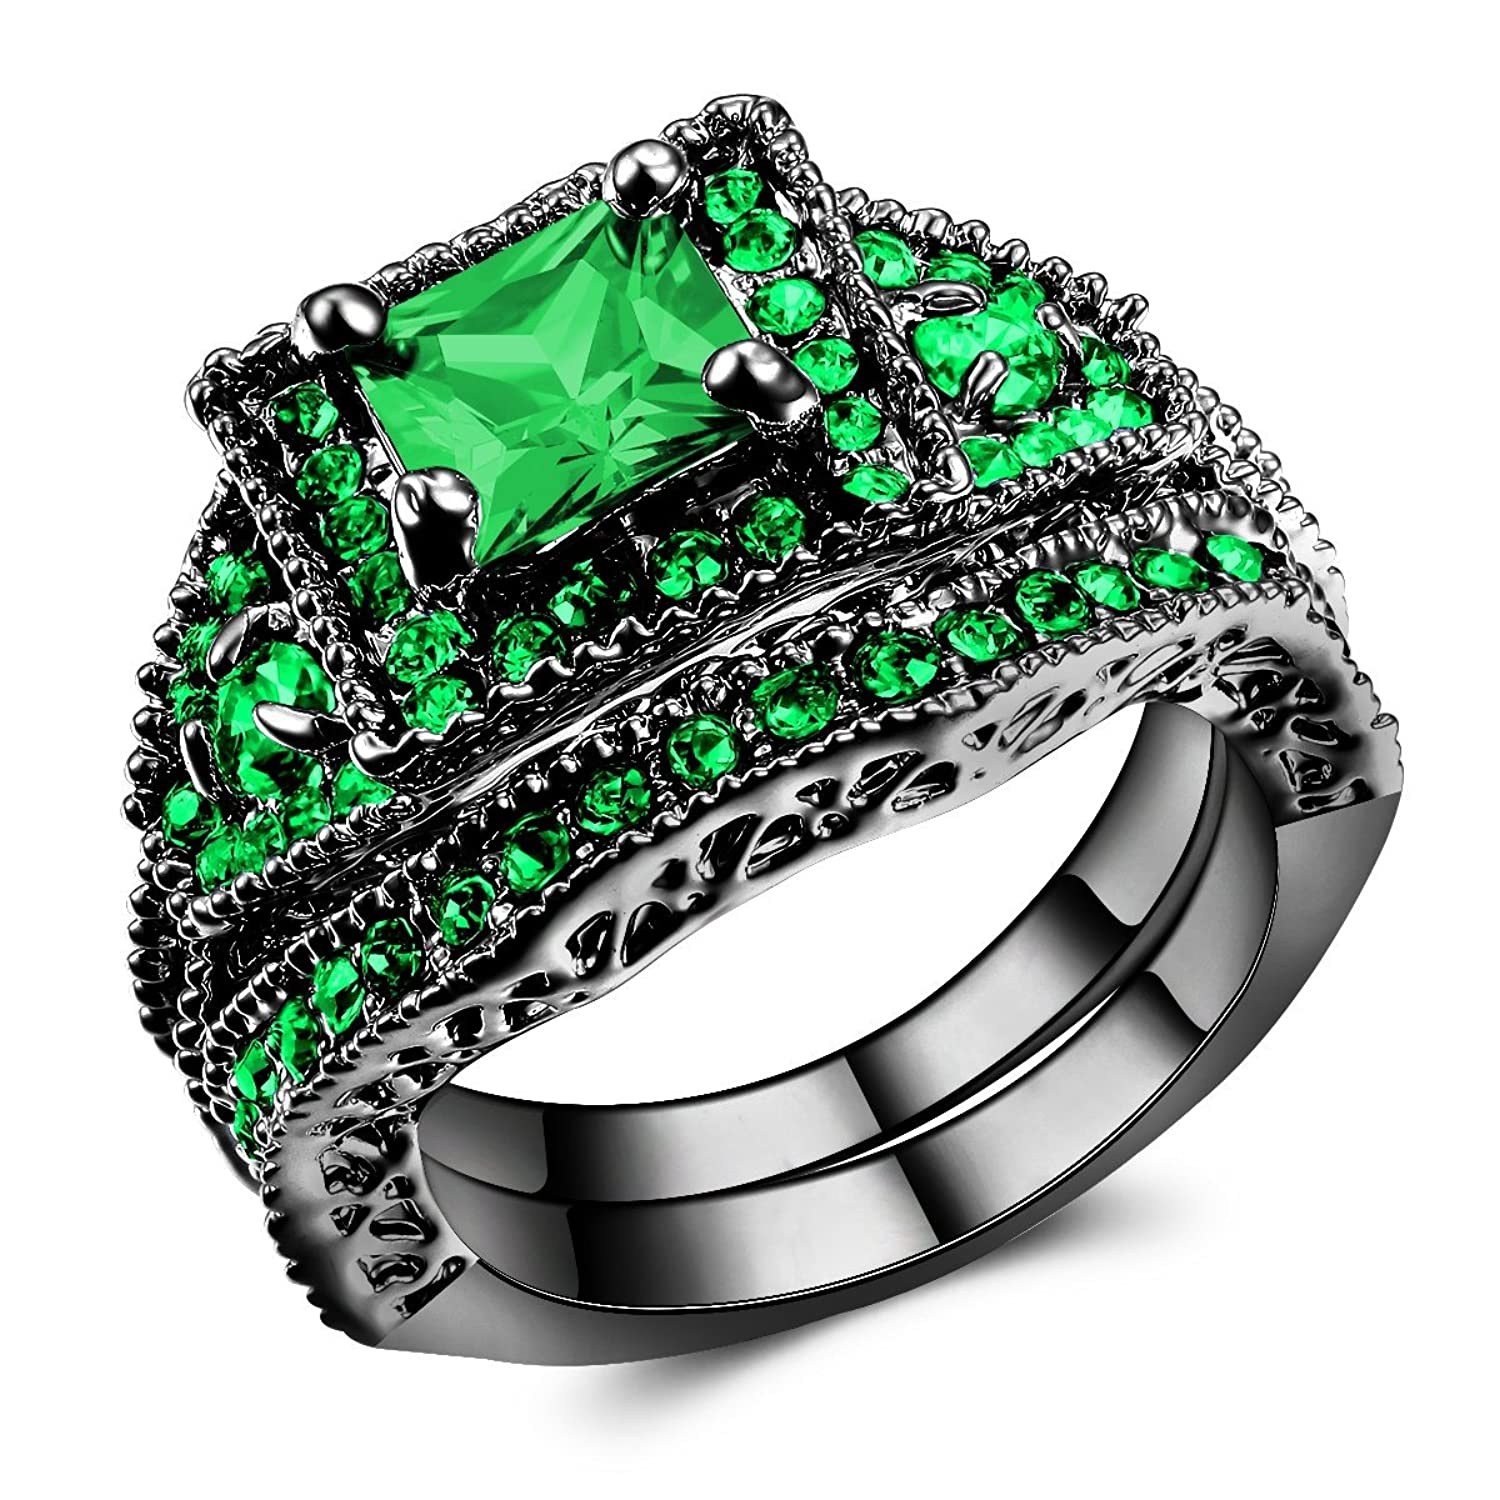 shipping free tdw wedding diamond rings today men ring gold green overstock s jewelry mens white product watches